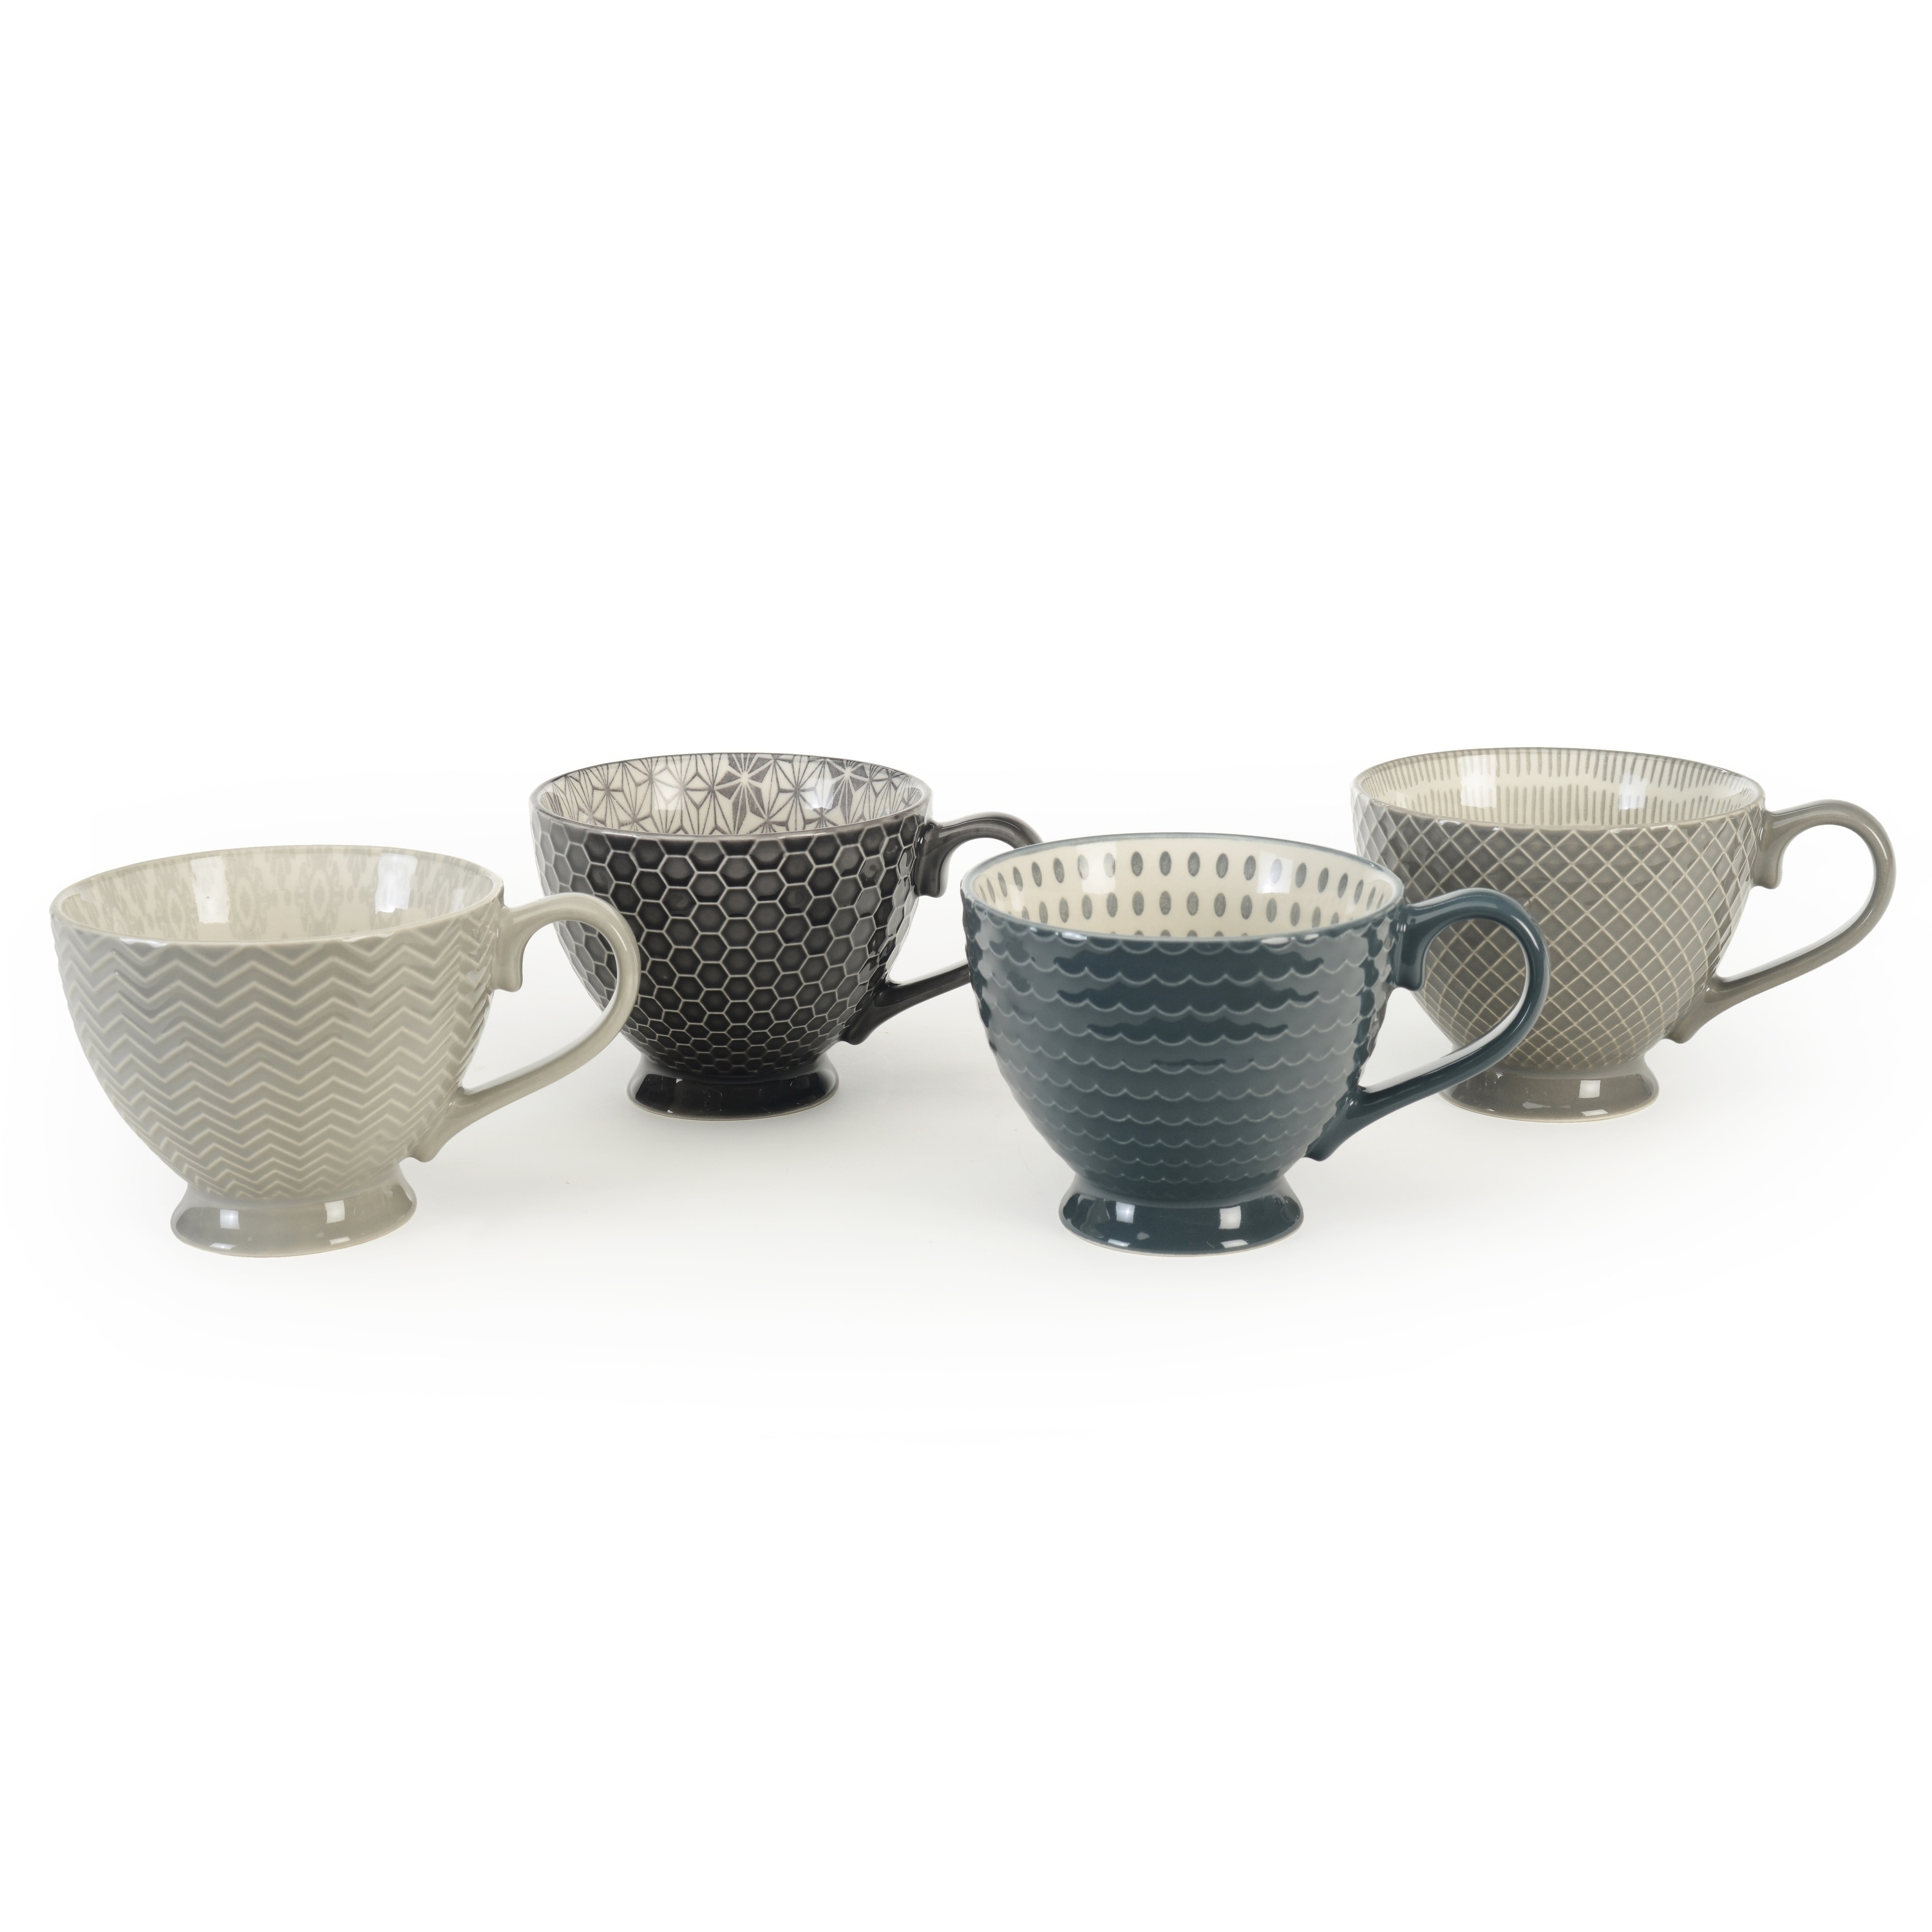 Pad Print Signature Housewares Footed Cups